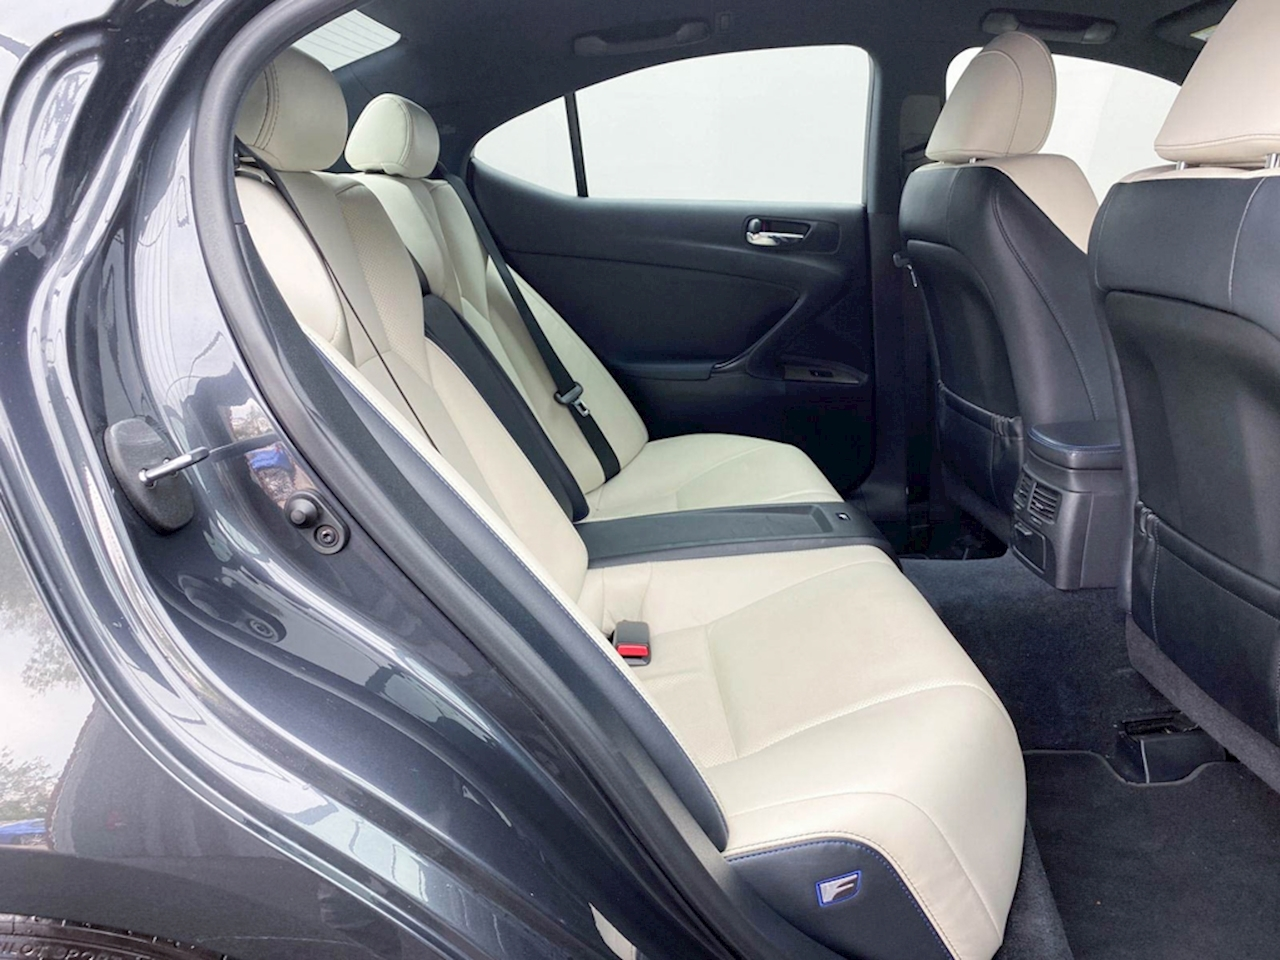 Lexus Is F IS F AUTO Saloon 5.0 Automatic Petrol